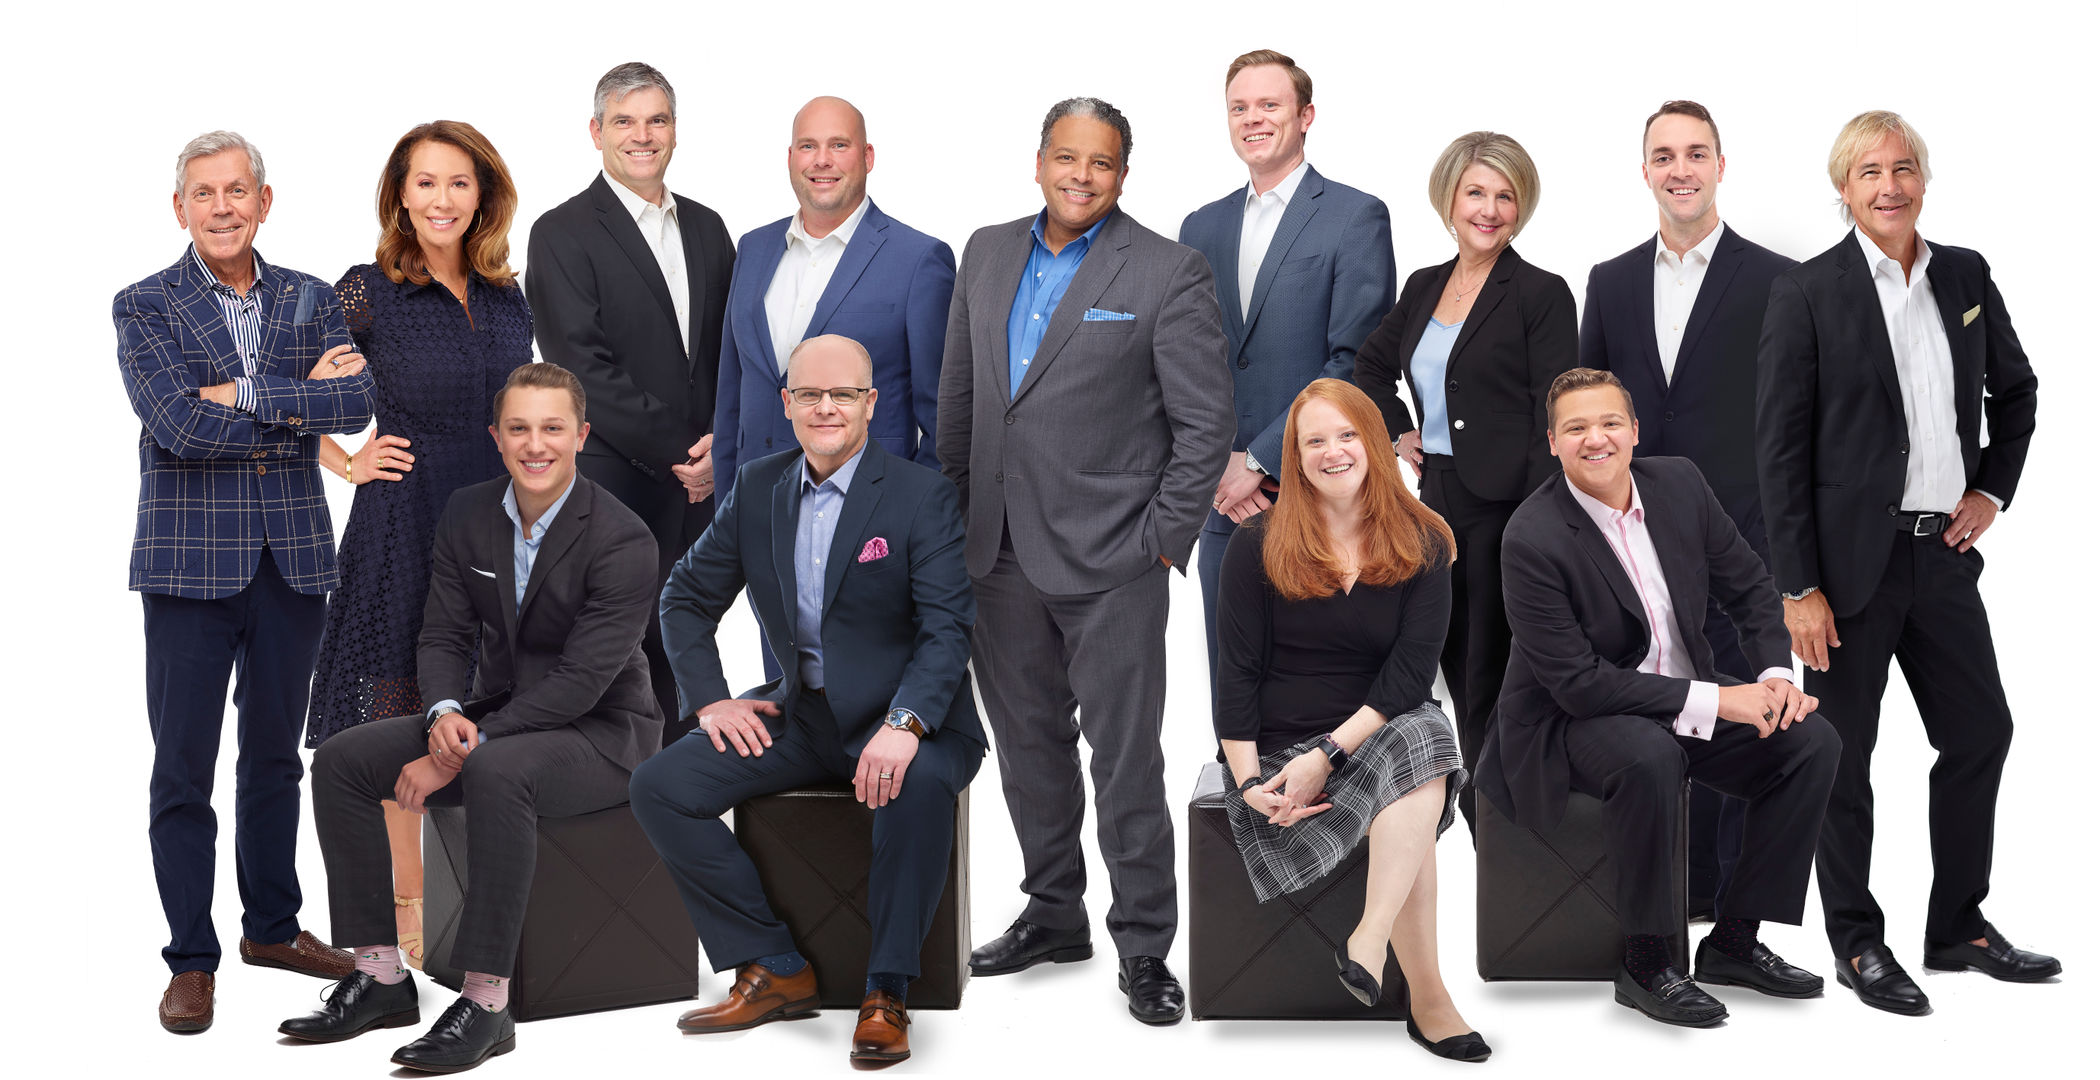 Hohimer Wealth Management Team Photo - Group Standing Together, David Hohimer in center surrounded by his team of Wealth Management professionals and staff.